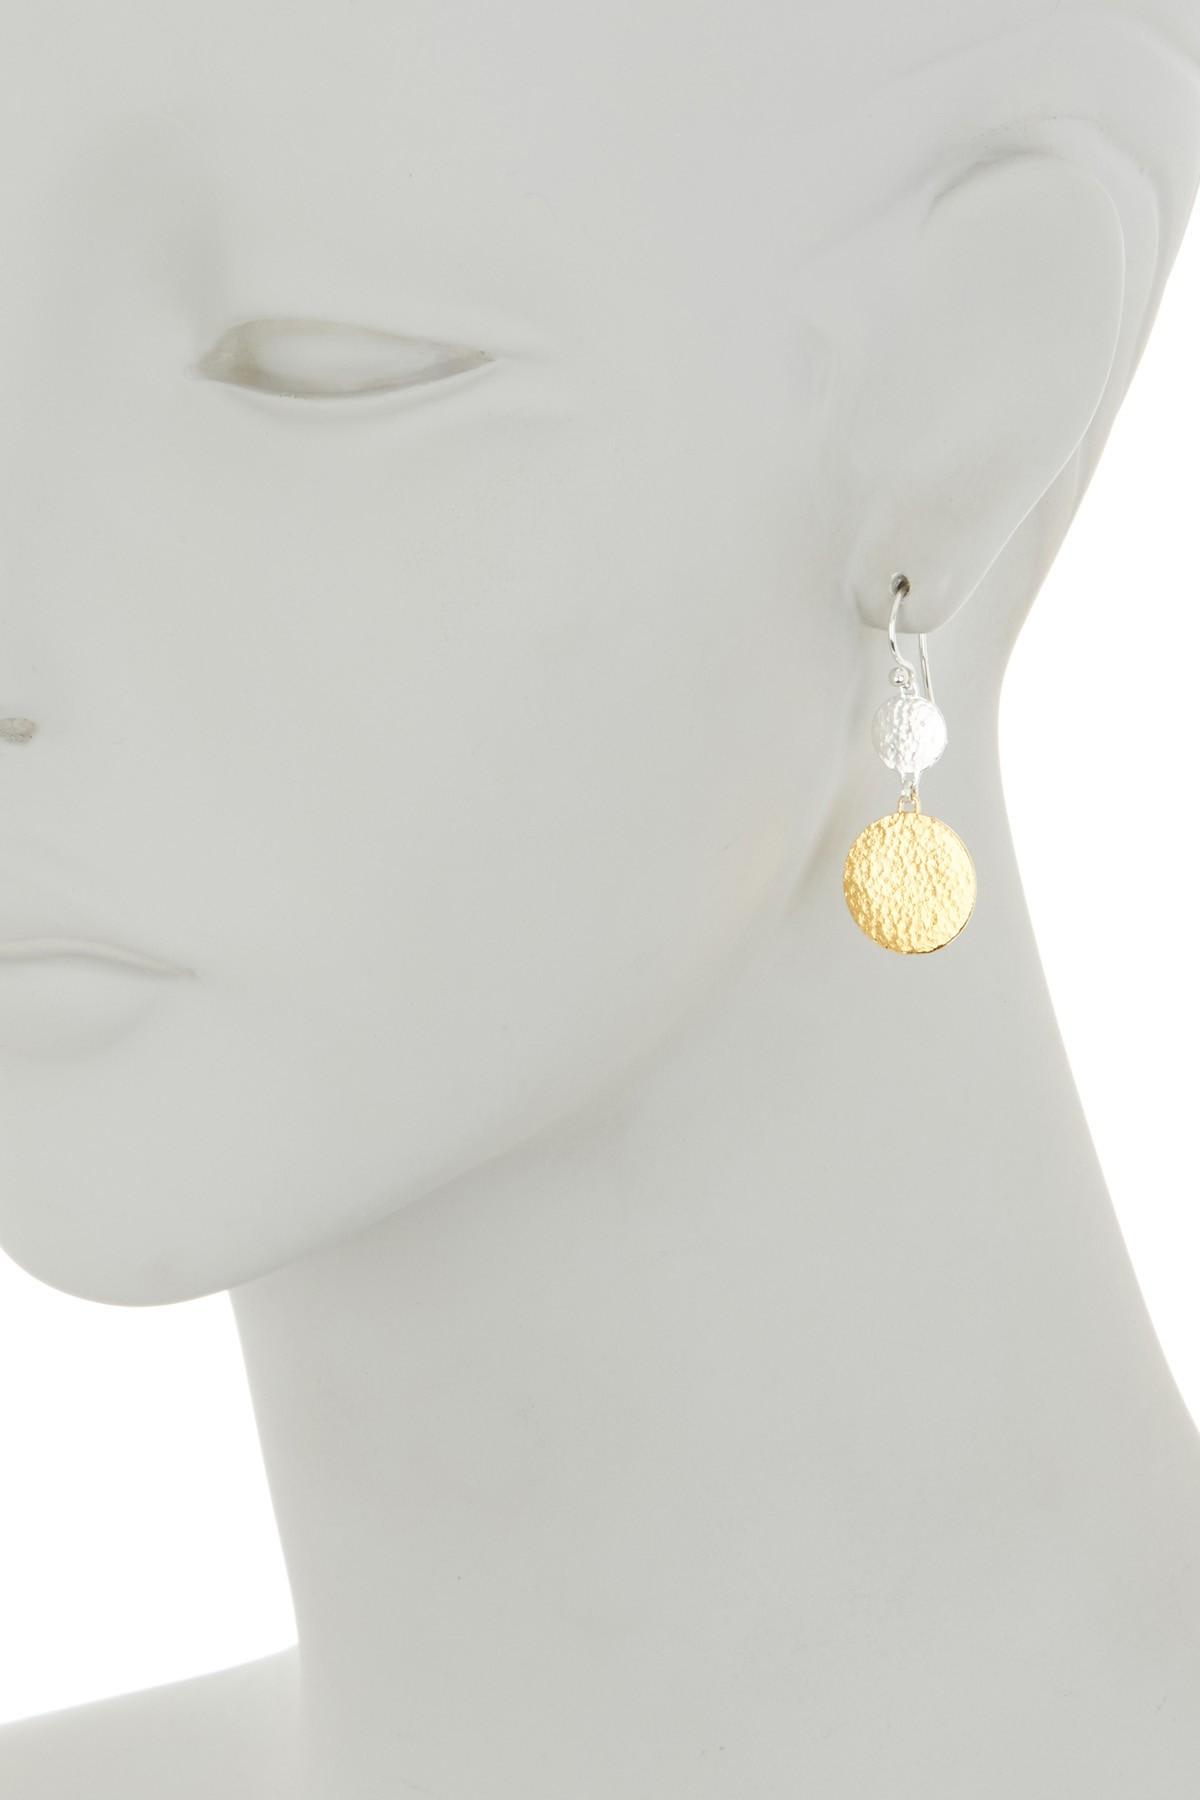 fcbbf6f1b Lyst - Gurhan 24k Gold & Sterling Silver Two-tone Lush Flake Double ...